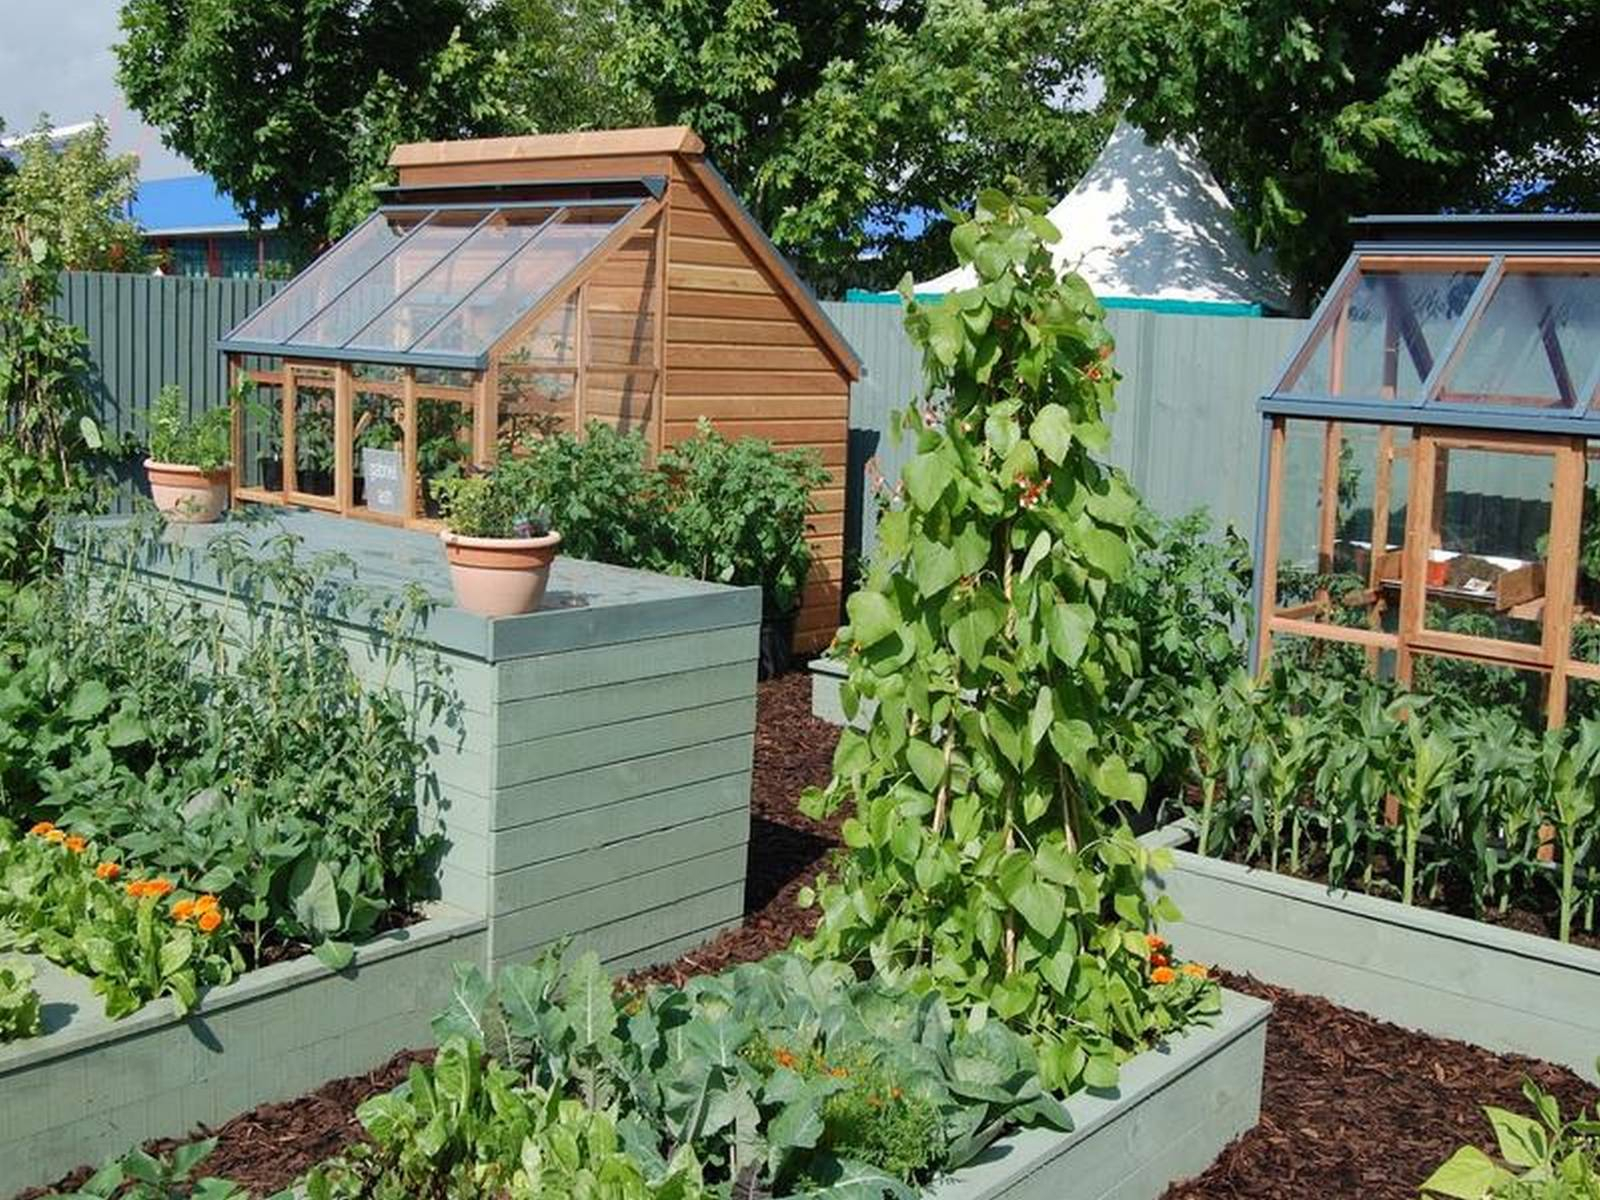 Emejing Vegetable Garden Design Ideas Images Efficient intended for 10 Some of the Coolest Initiatives of How to Craft Backyard Vegetable Garden Ideas